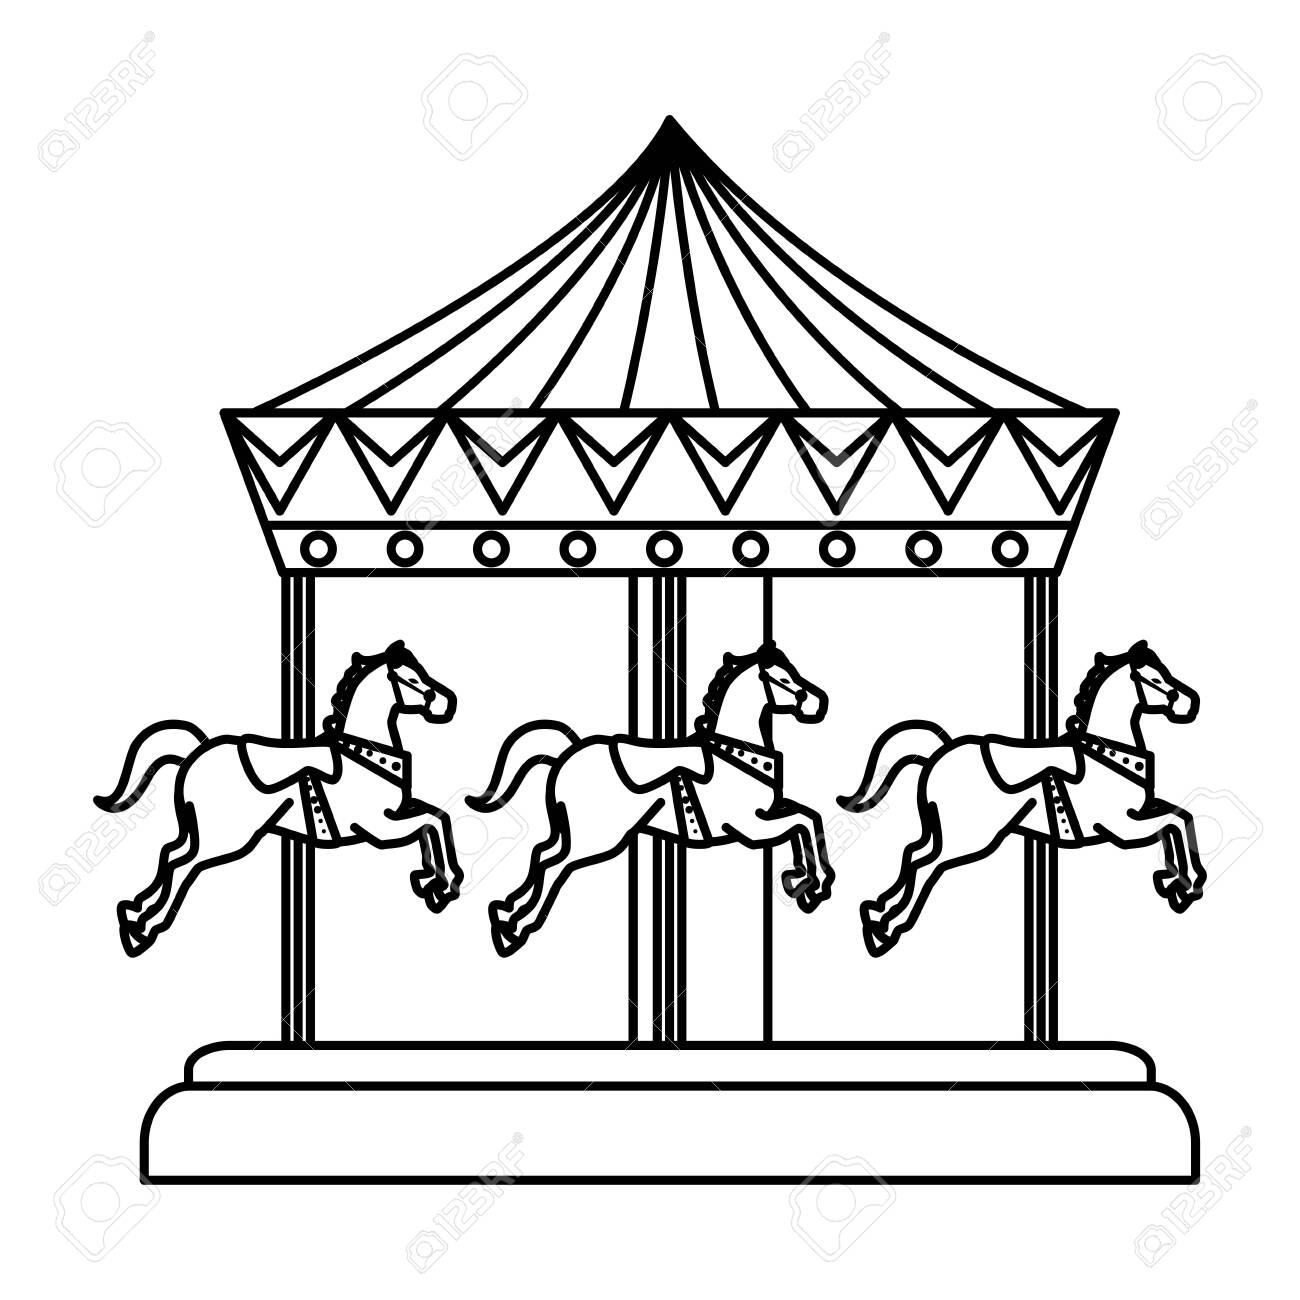 Carnival Carousel Horses Icon Vector Illustration Design Royalty Free Cliparts Vectors And Stock Illustration Image 129359424